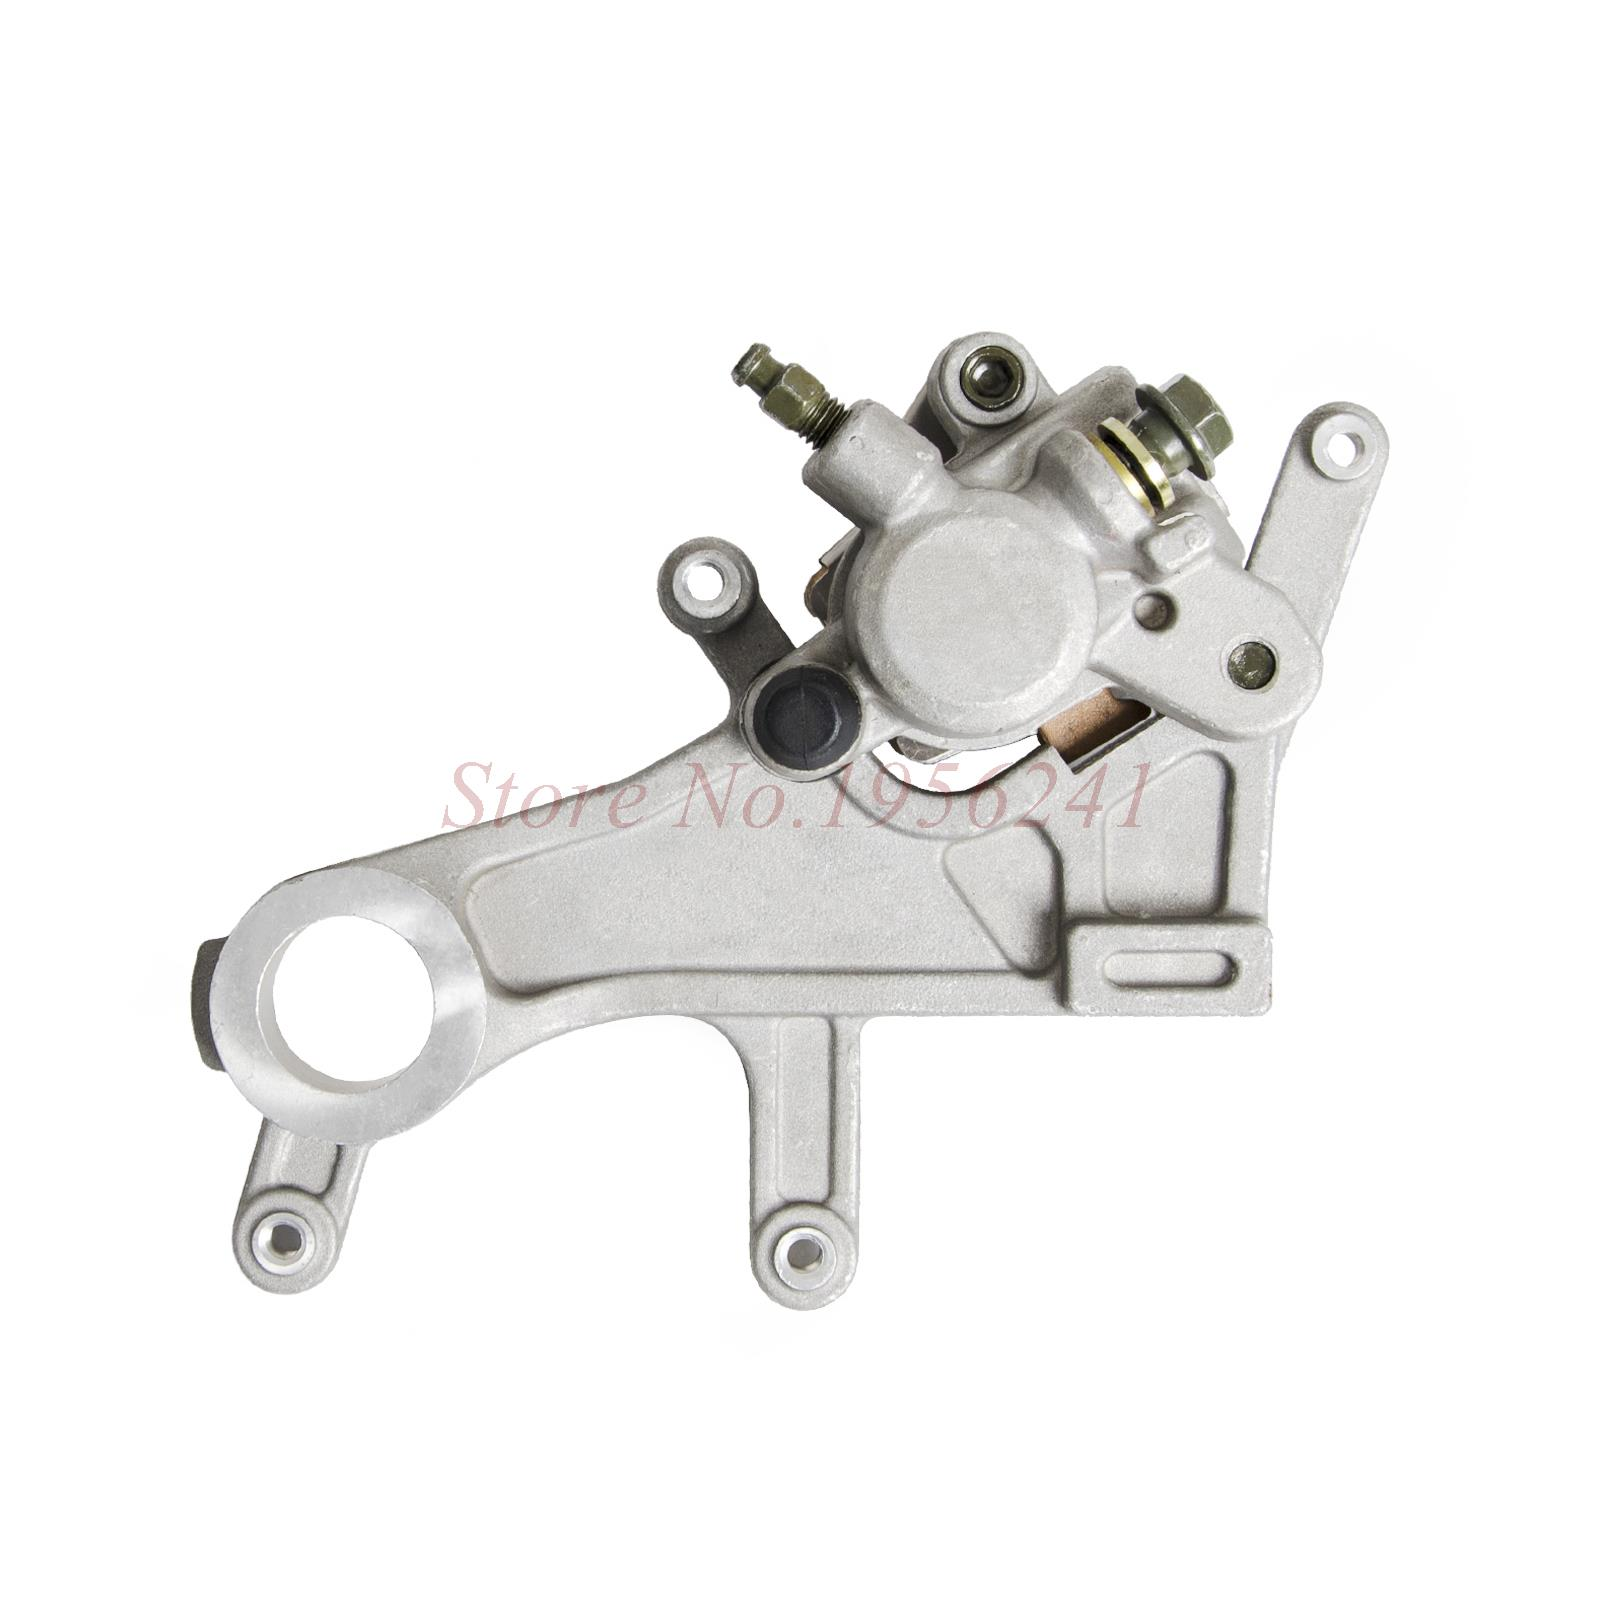 Motorcycle Rear Brake Caliper For Honda Cr125r Cr150r Cr 125r 150r 2002 2007 2003 2004 2005 2006